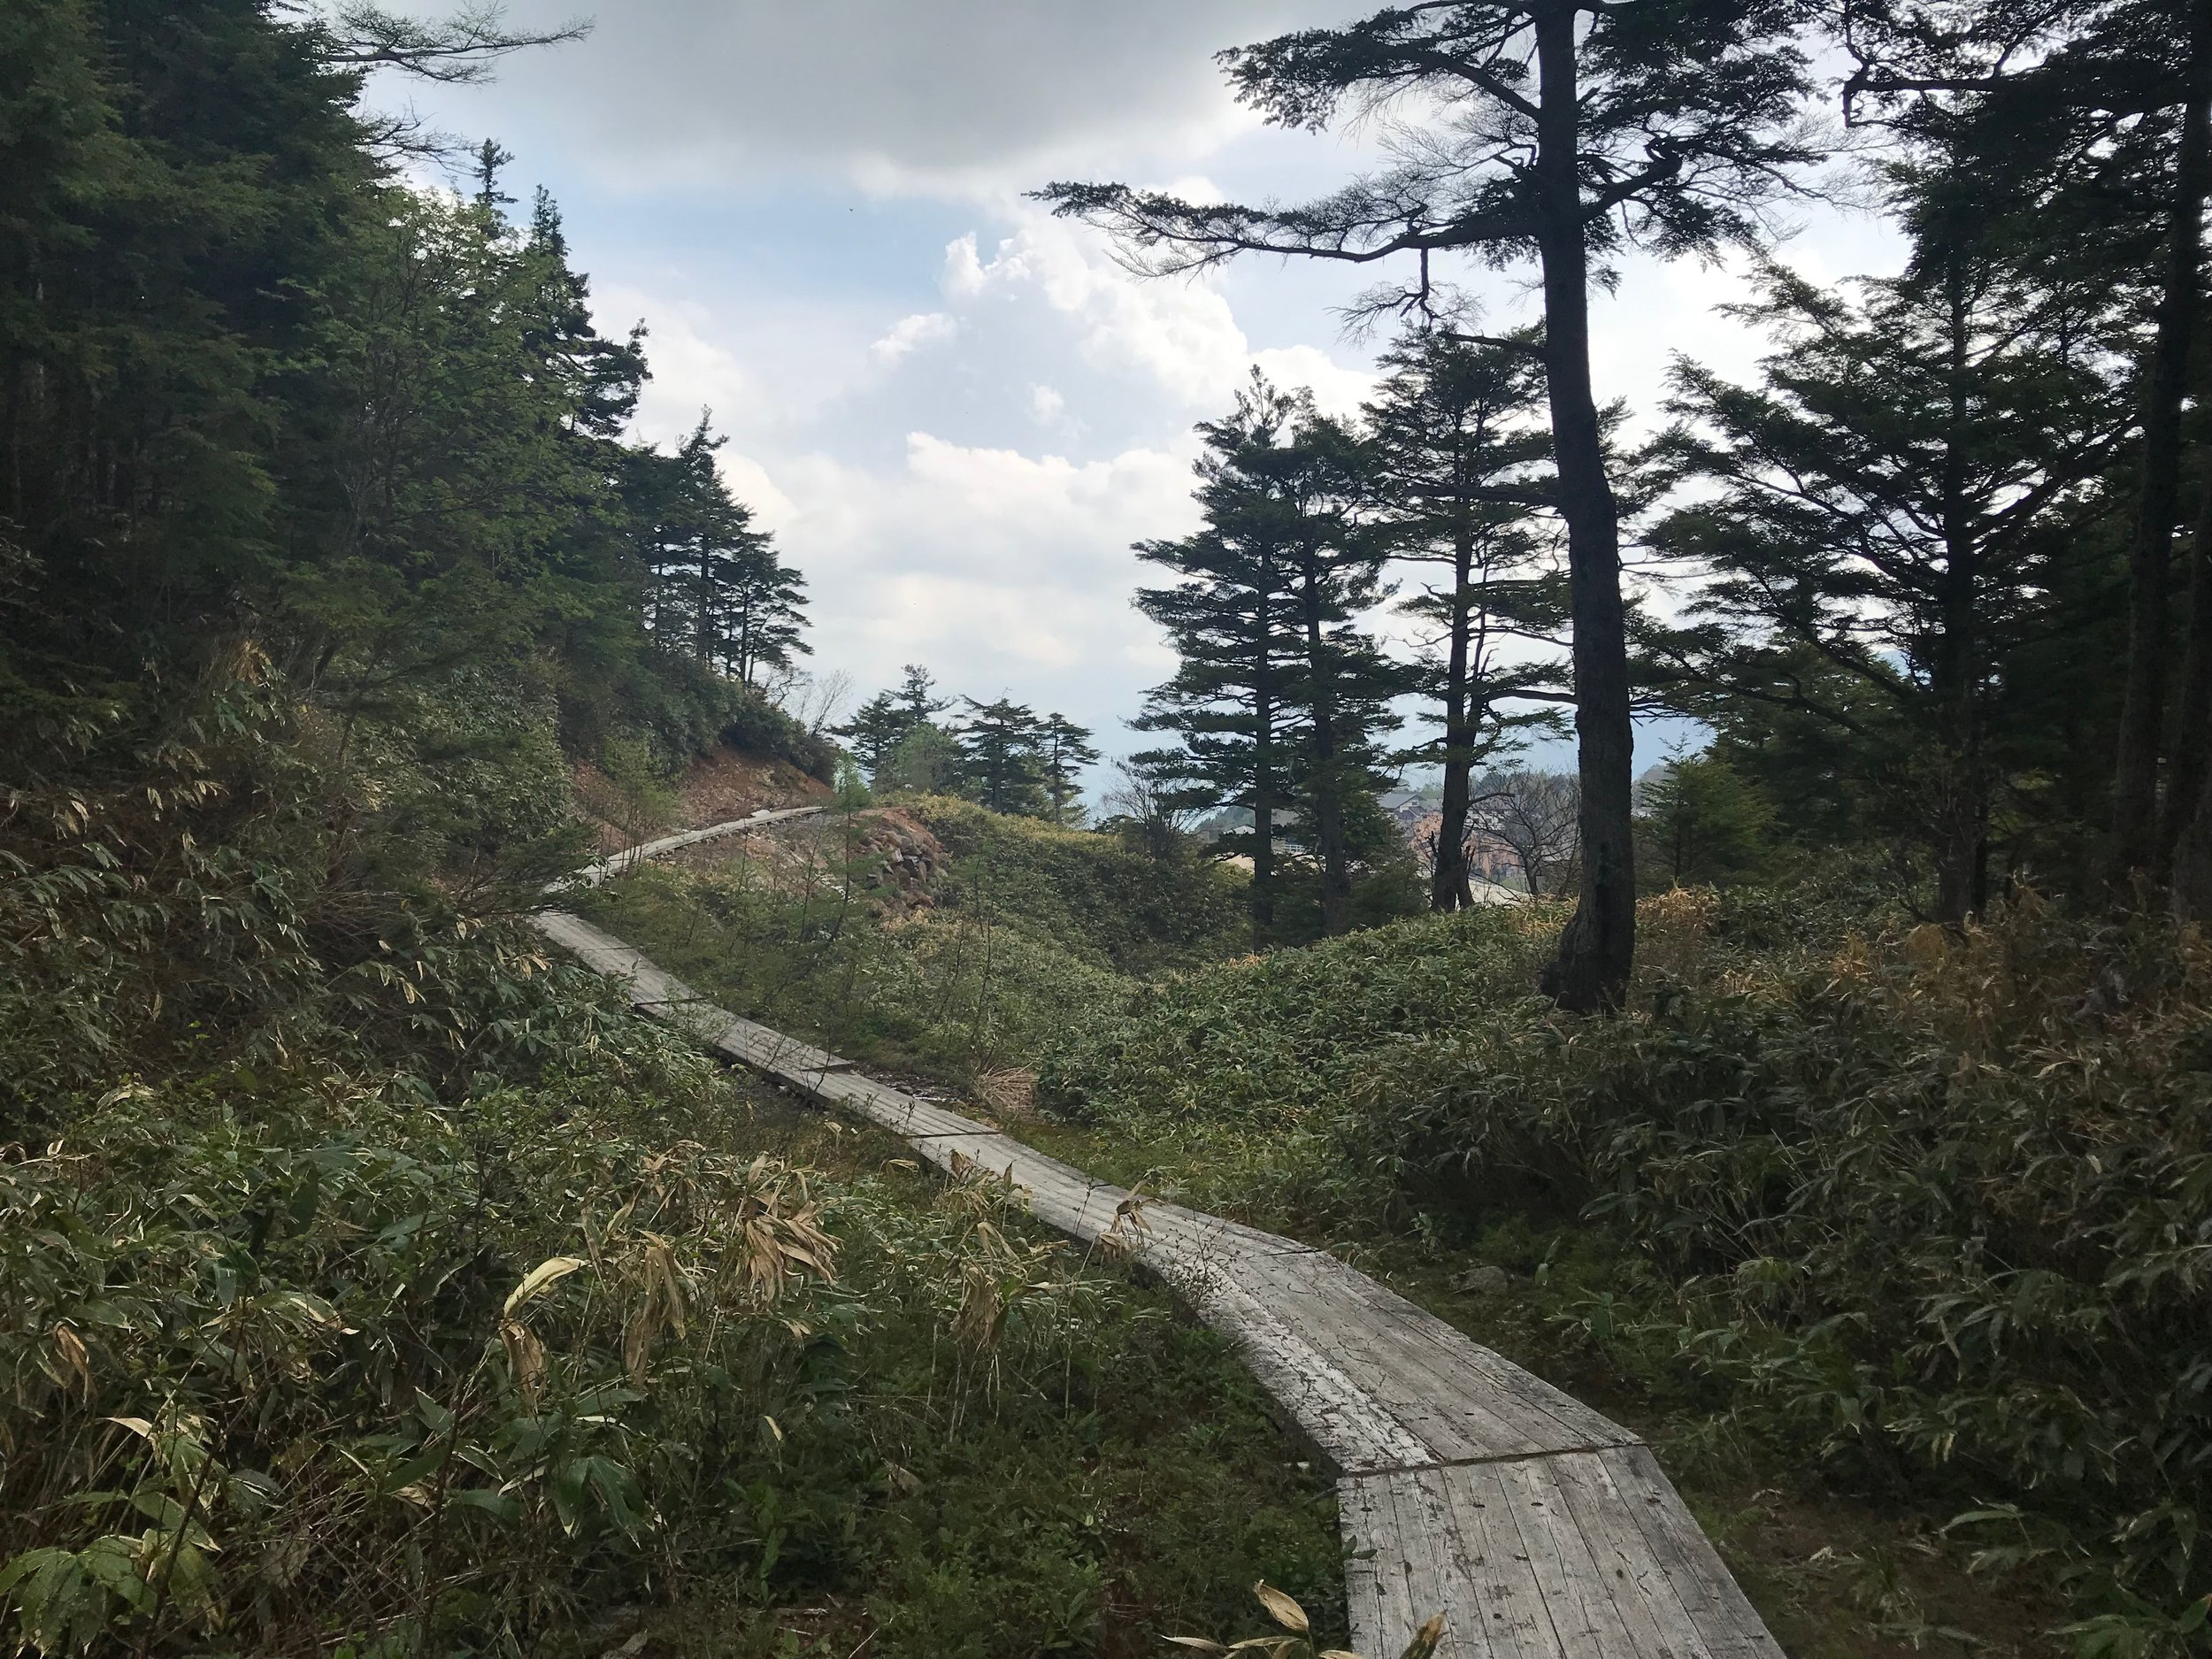 A hiking path leading away from the water field.